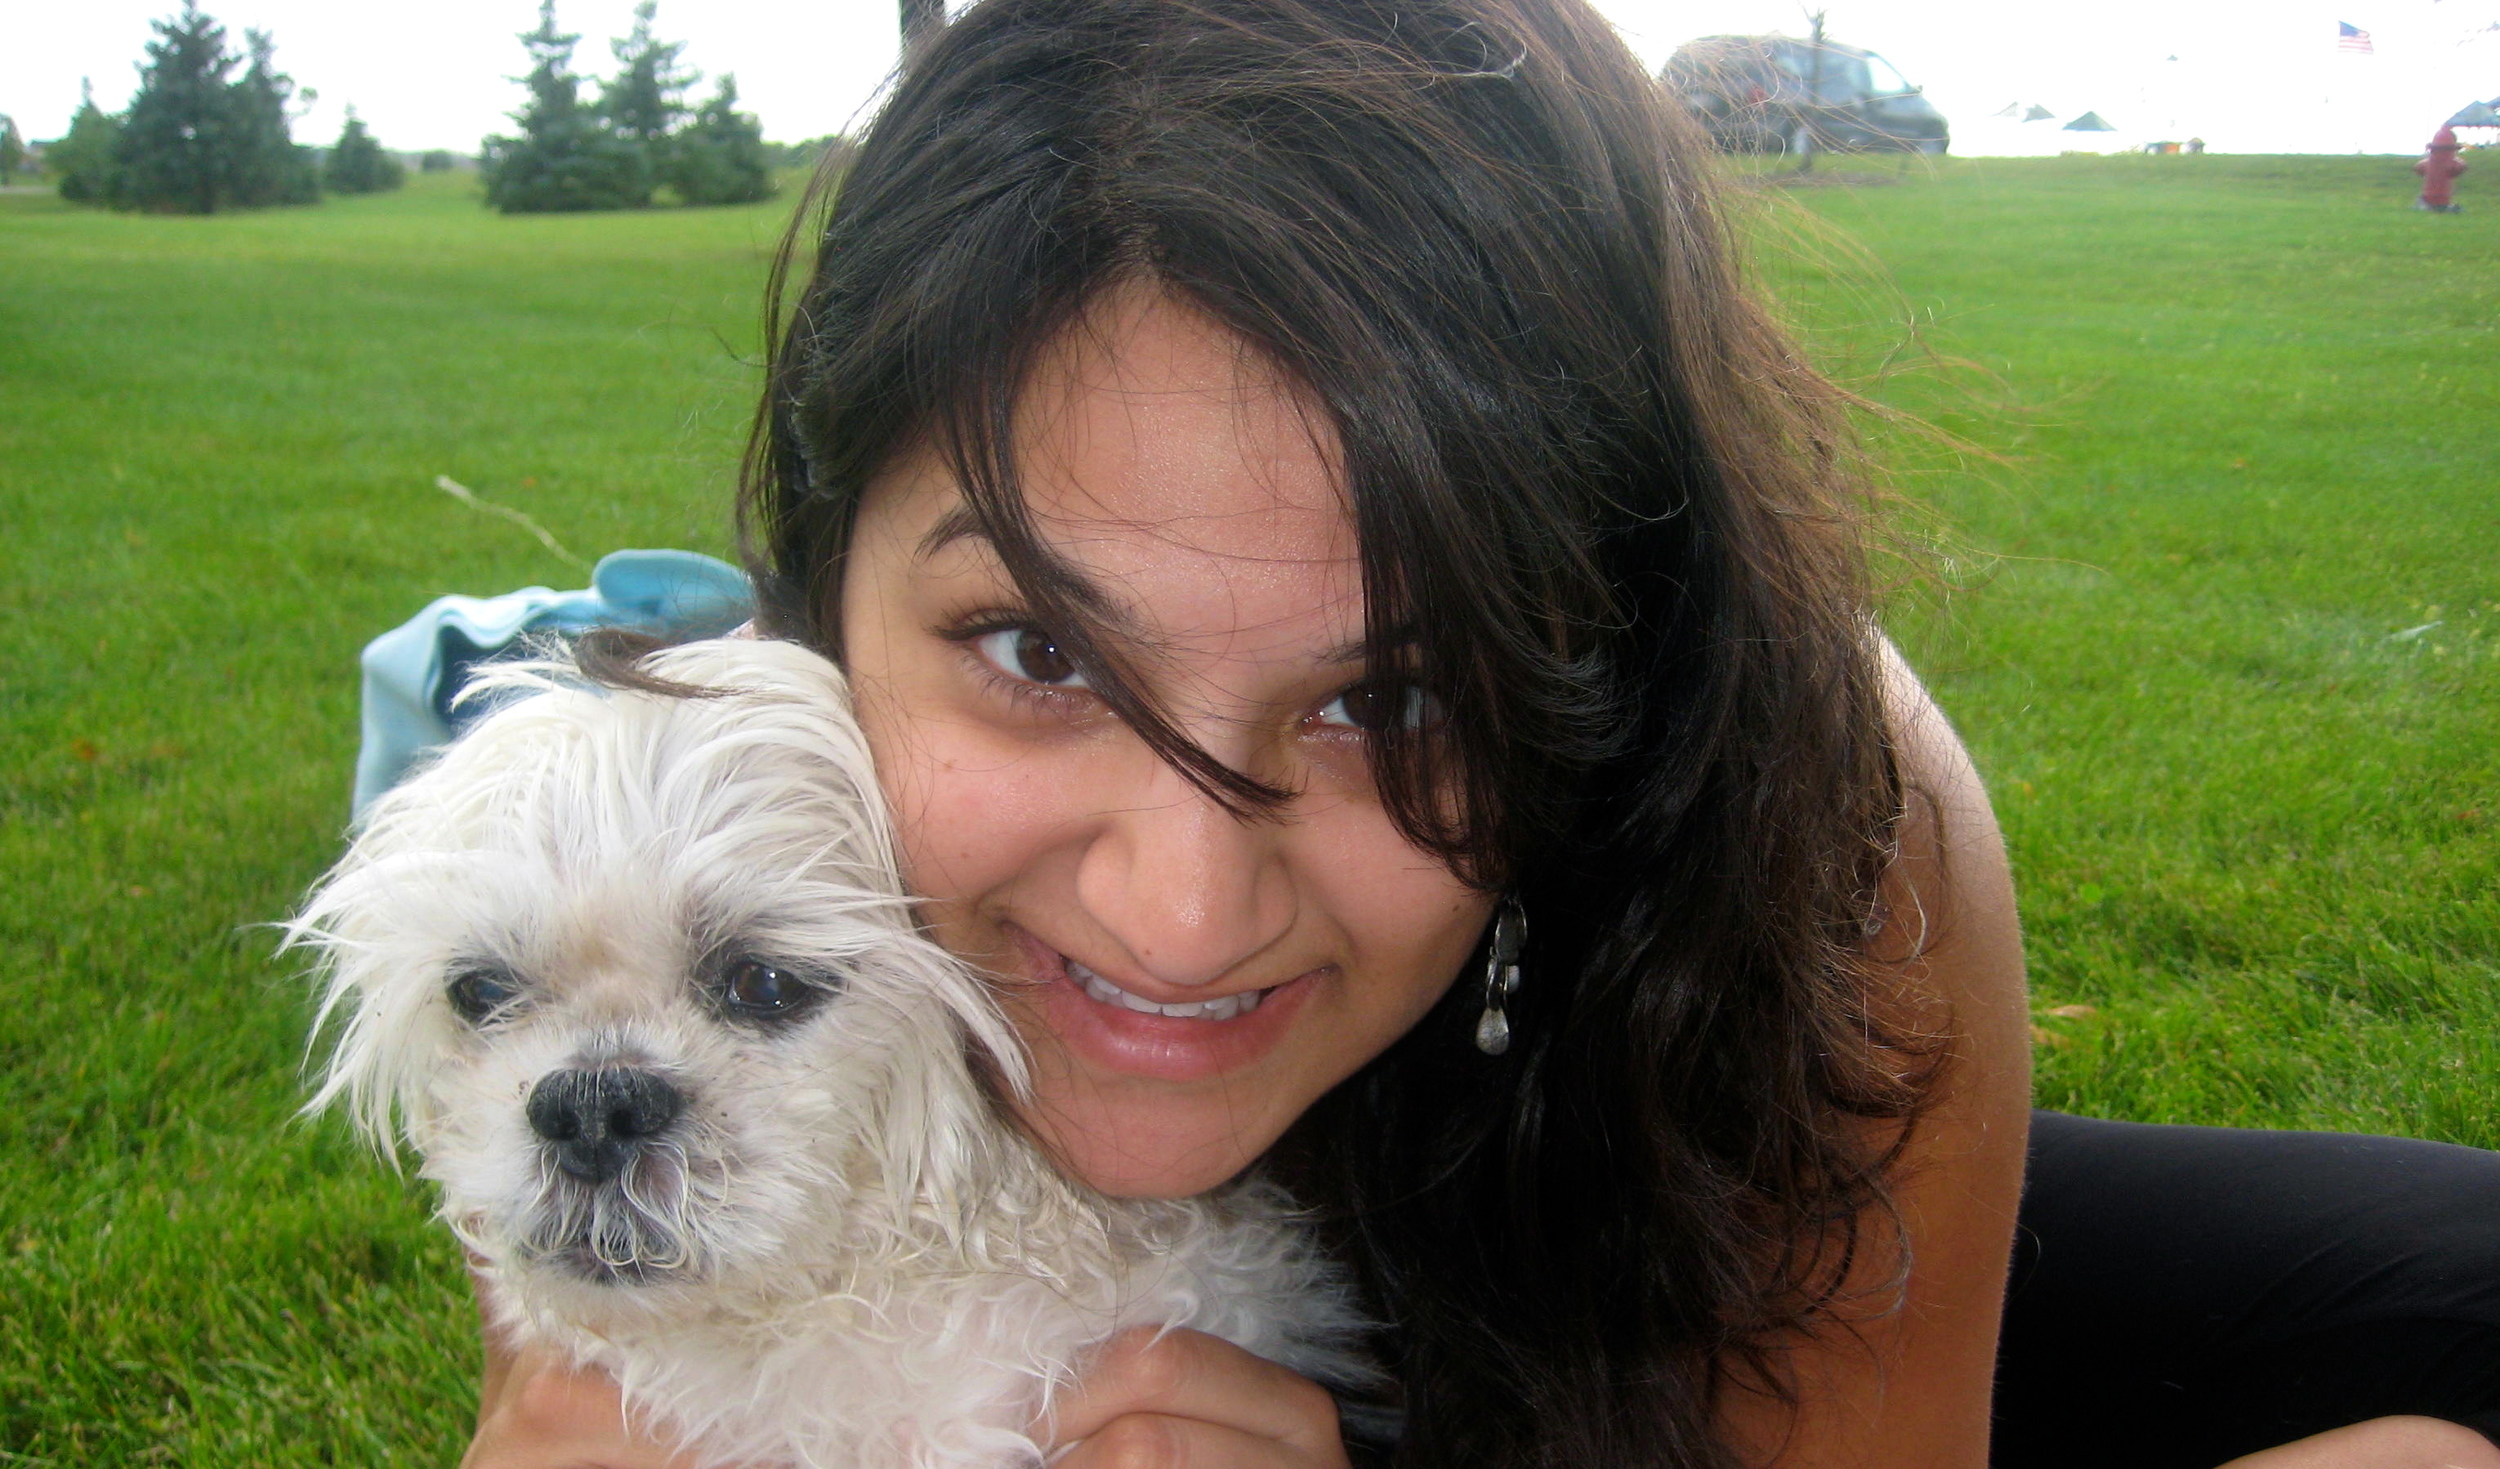 The Love of My Life - The Reason I Became a Veterinarian - Tasha - Always Remembered and Forever Missed - 2010